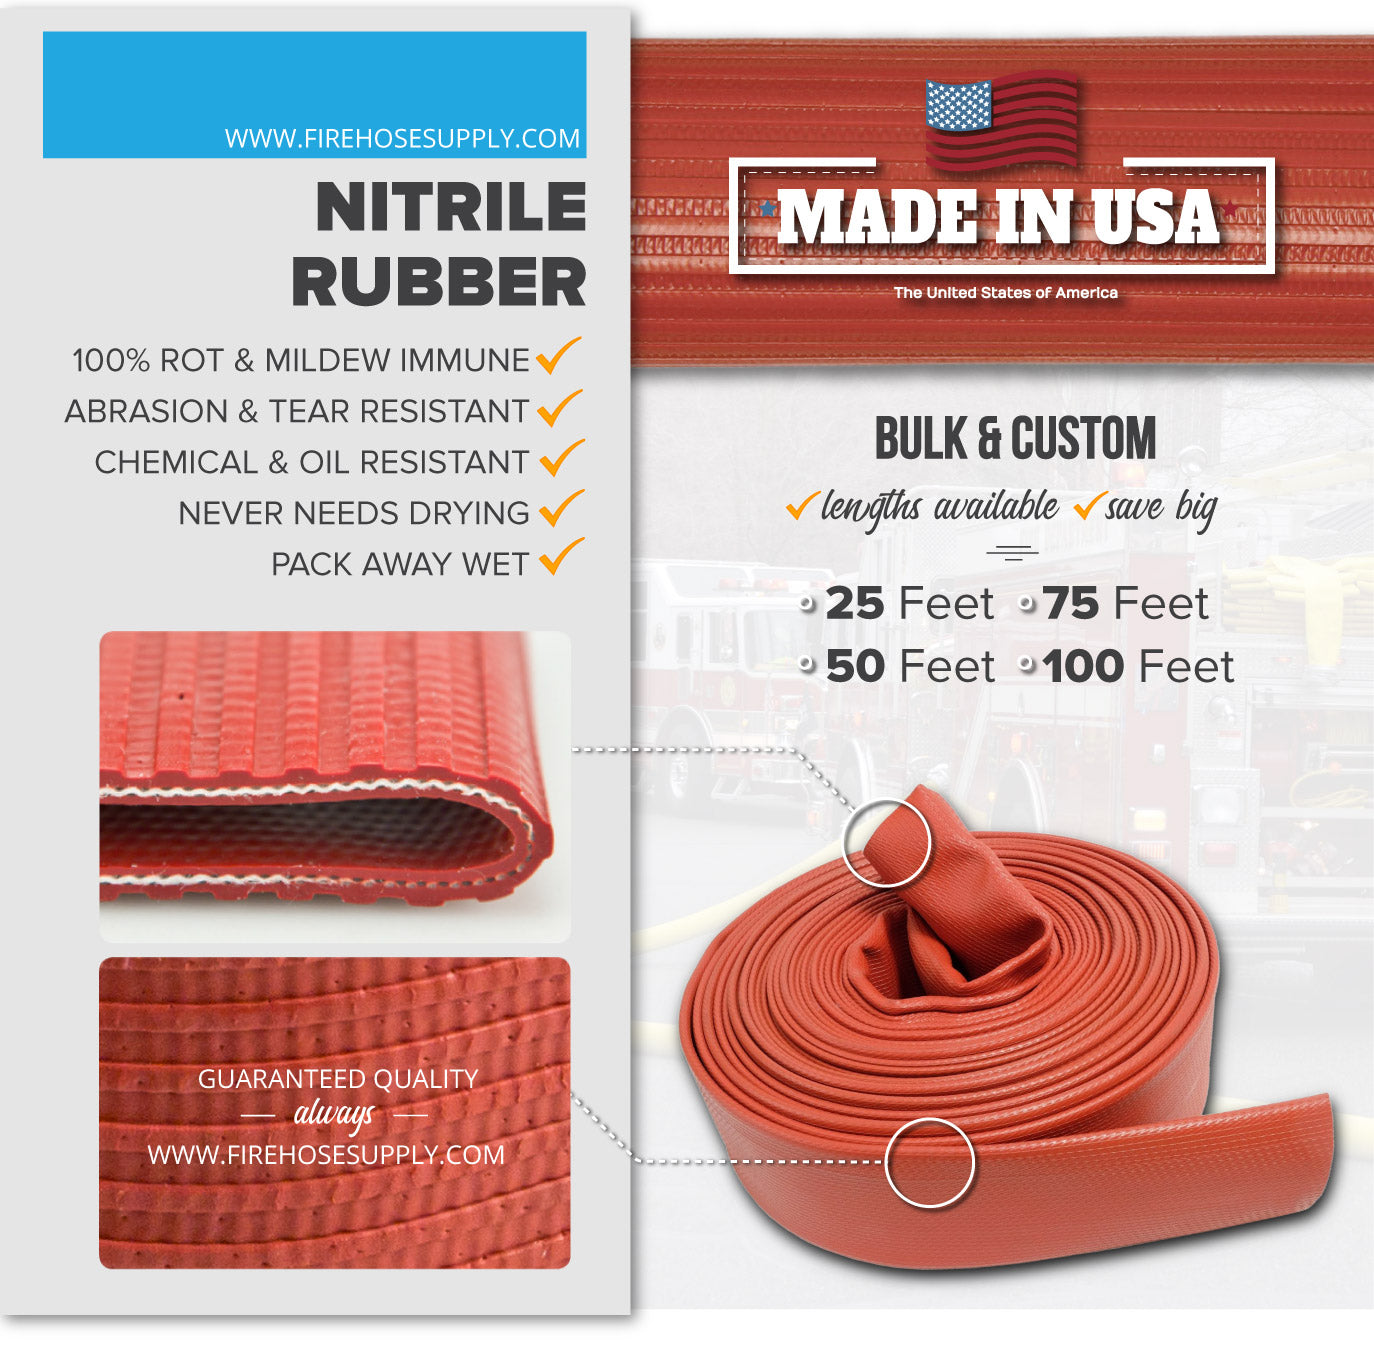 3 Inch Uncoupled Rubber Fire Hose Only No Connectors Red Nitrile 300 PSI